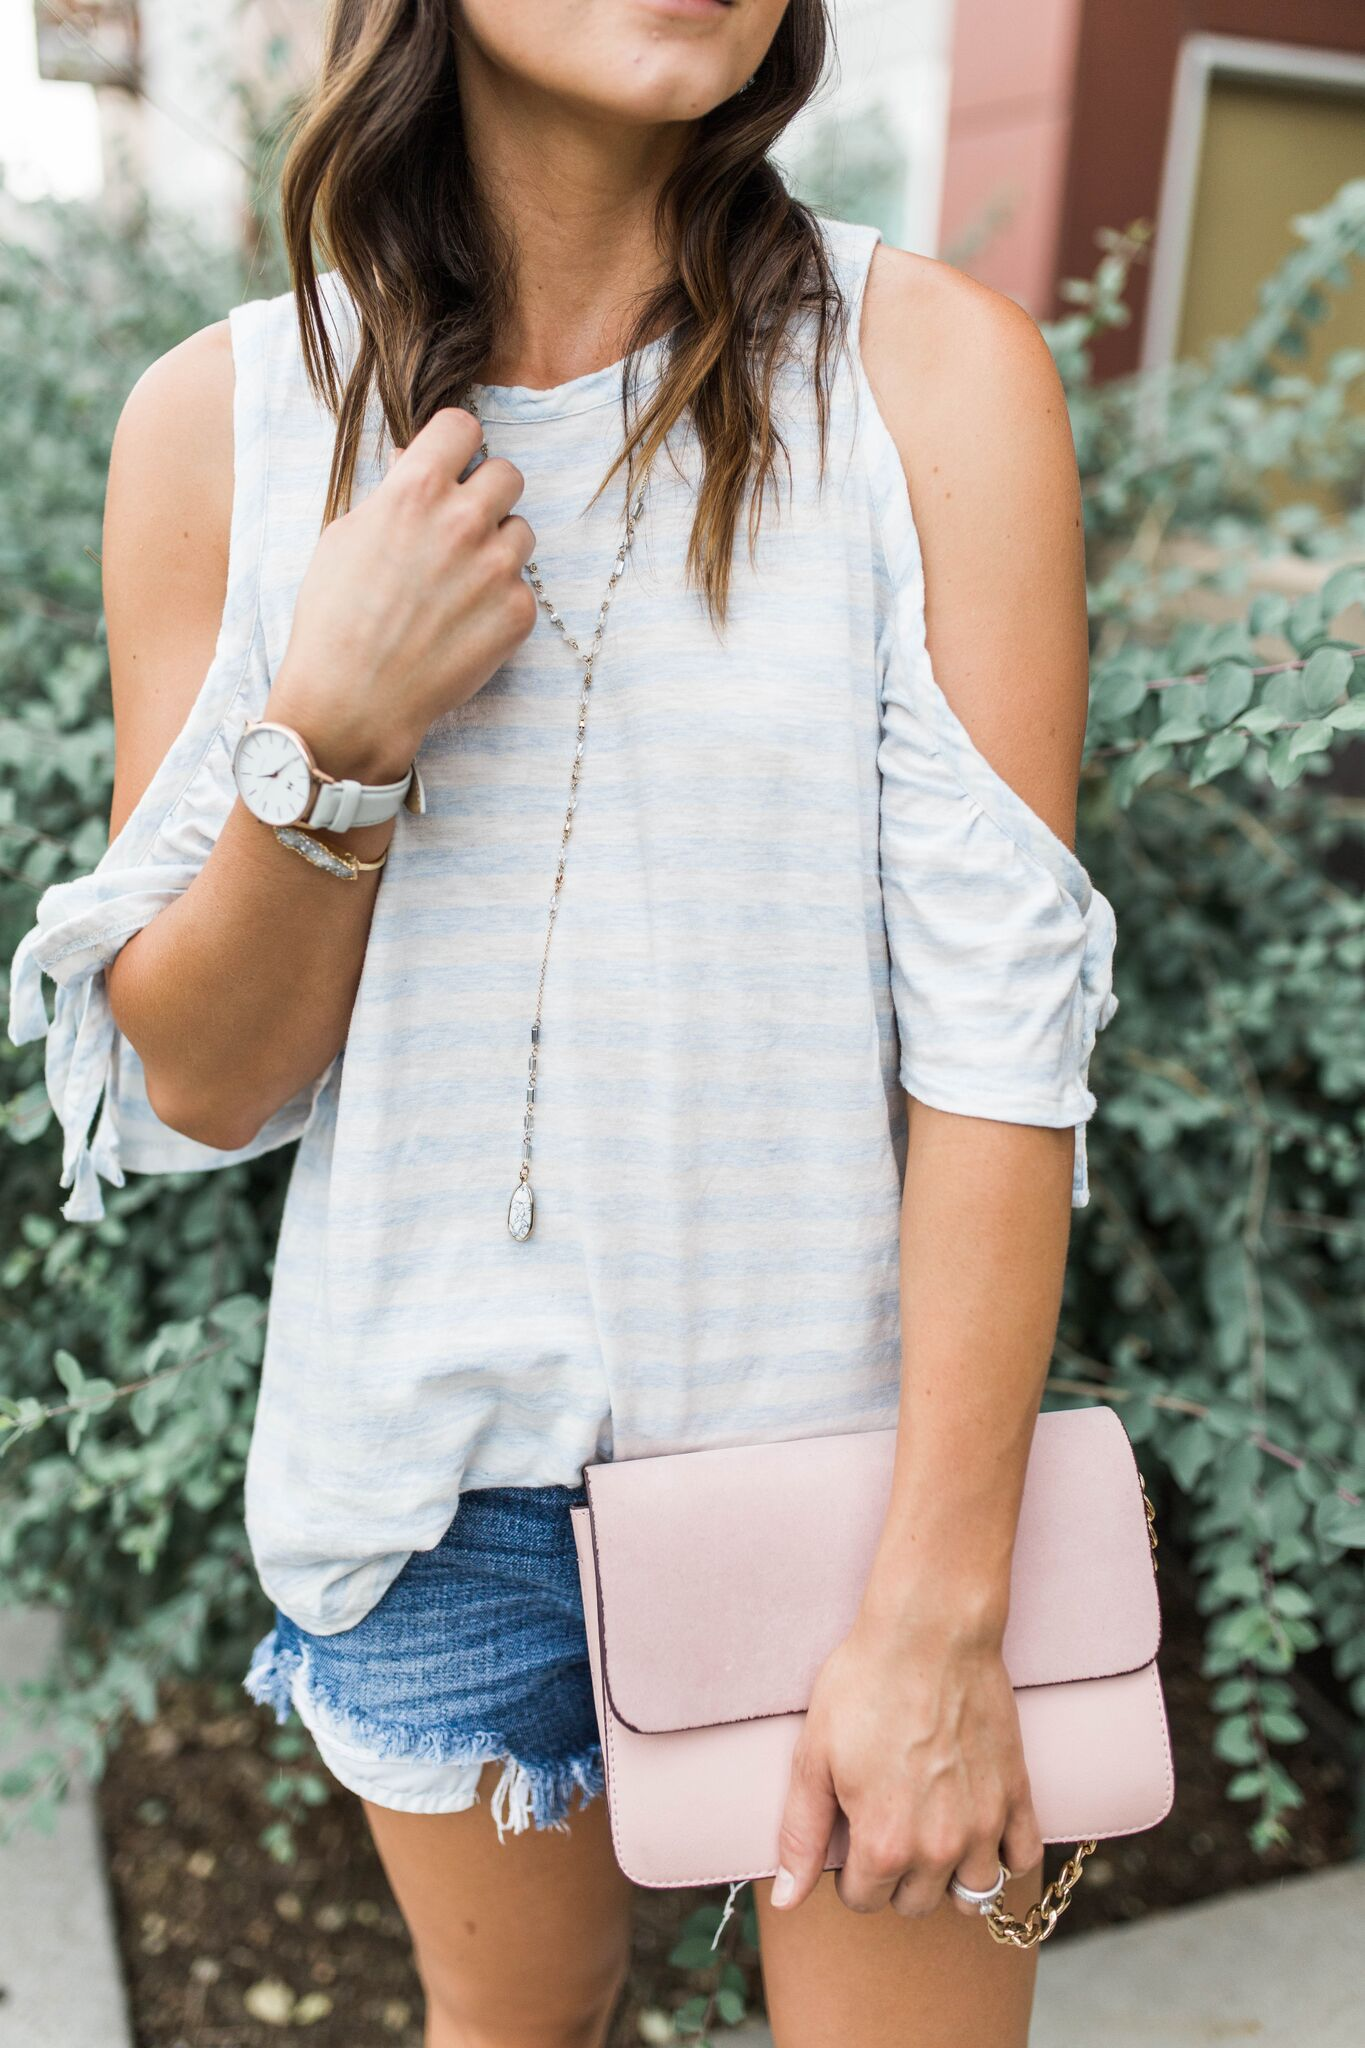 "<img src =""five-summer-pieces-to-have-in-your-closet.jpg. alt="" detail-shot-of-denver-fashion-blogger-styling-summer-pieces-to-have-in-your-closet-denim-cut-off-shorts-cold-shoulder-tee-and-steve-madden-jole-pearl-sandal-and-pink-handbags"">"